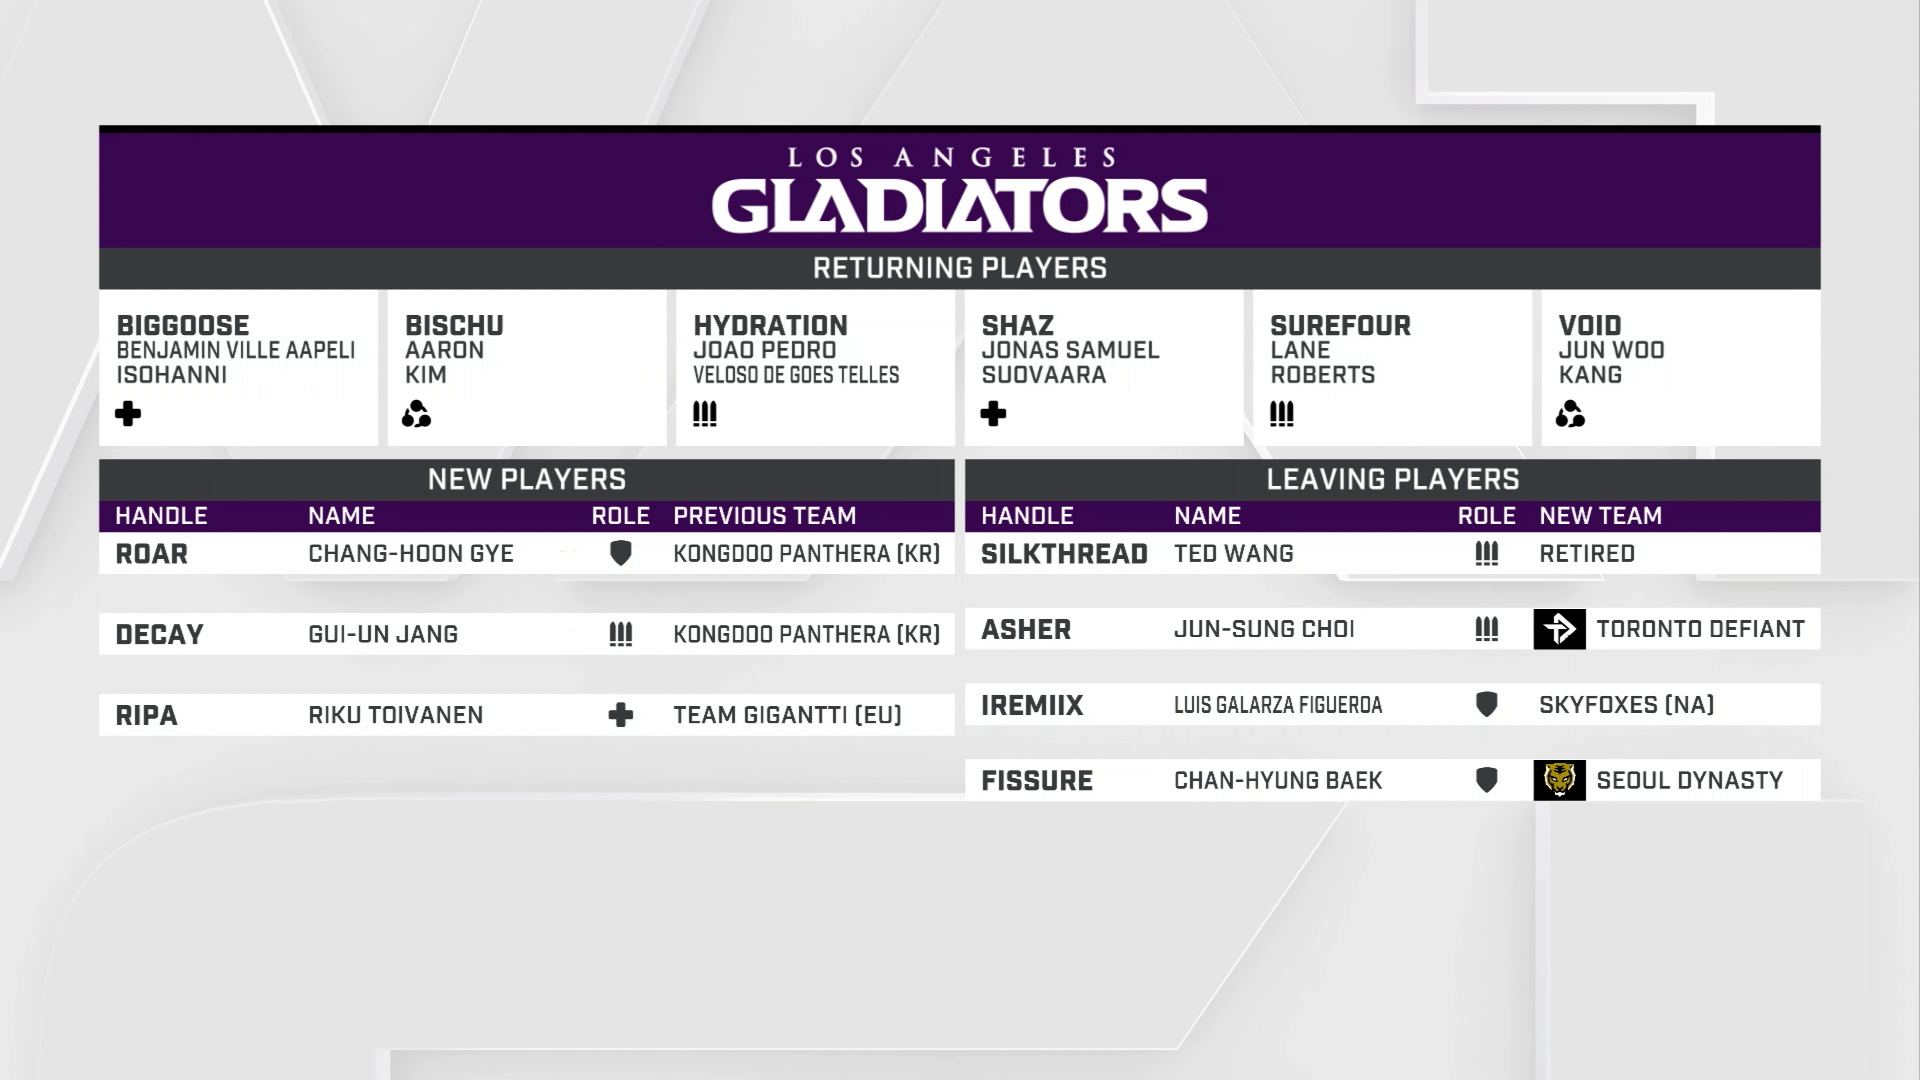 Vorschau zur Overwatch League 2019: Los Angeles Gladiators